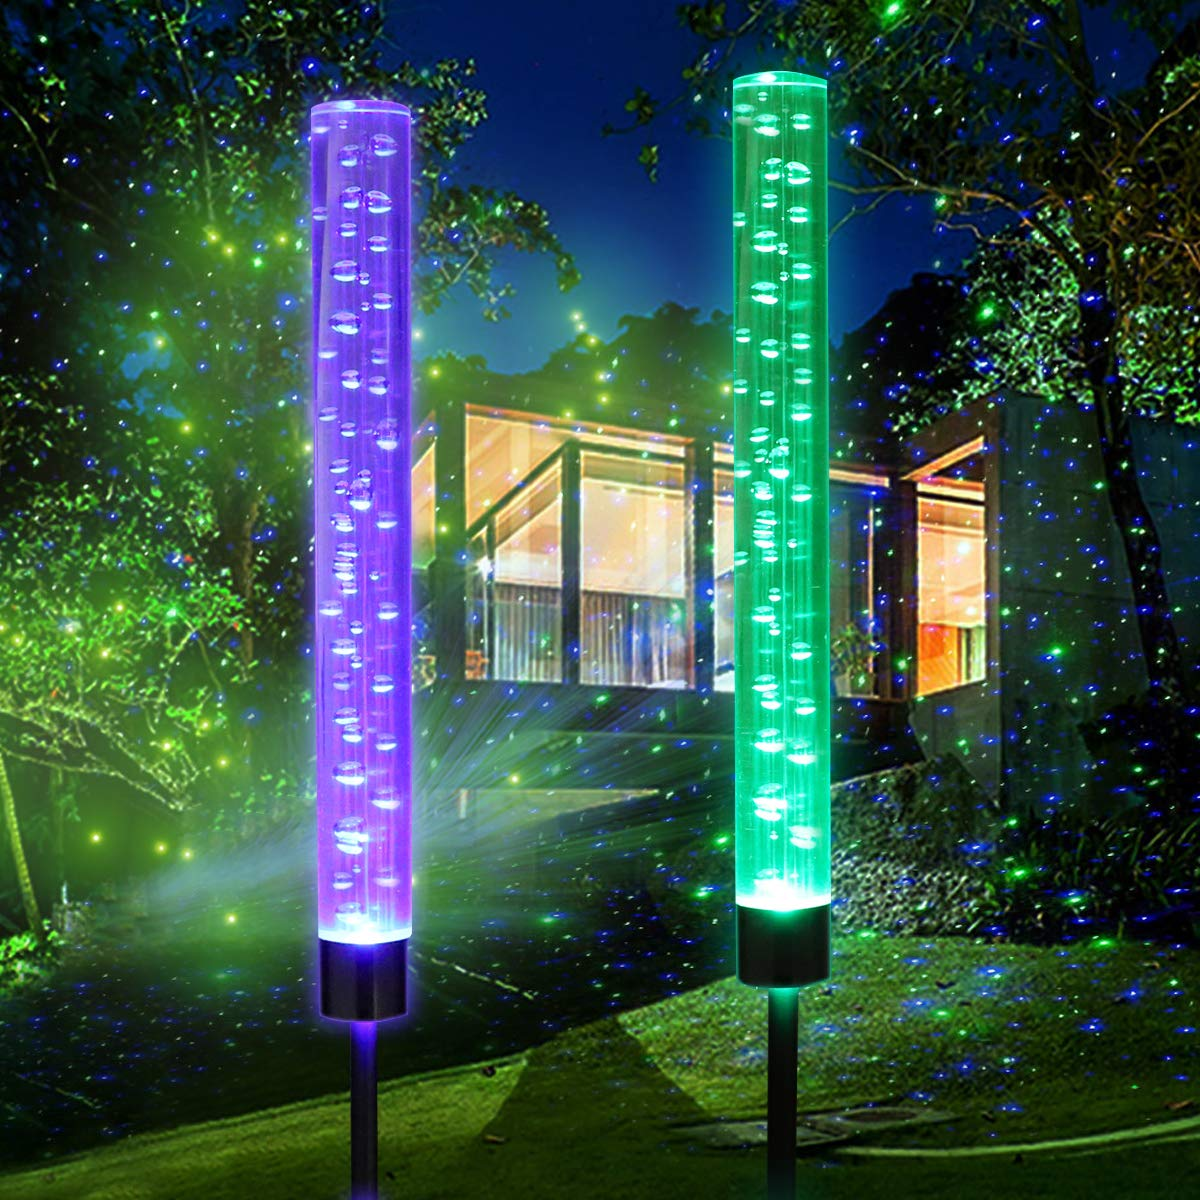 Outdoor Solar Garden Stake Lights,Wohome 2pcs Solar Acrylic Bubble RGB Color, Solar Landscape Lighting Light for Garden, Patio,Yard Decoration by WOHOME